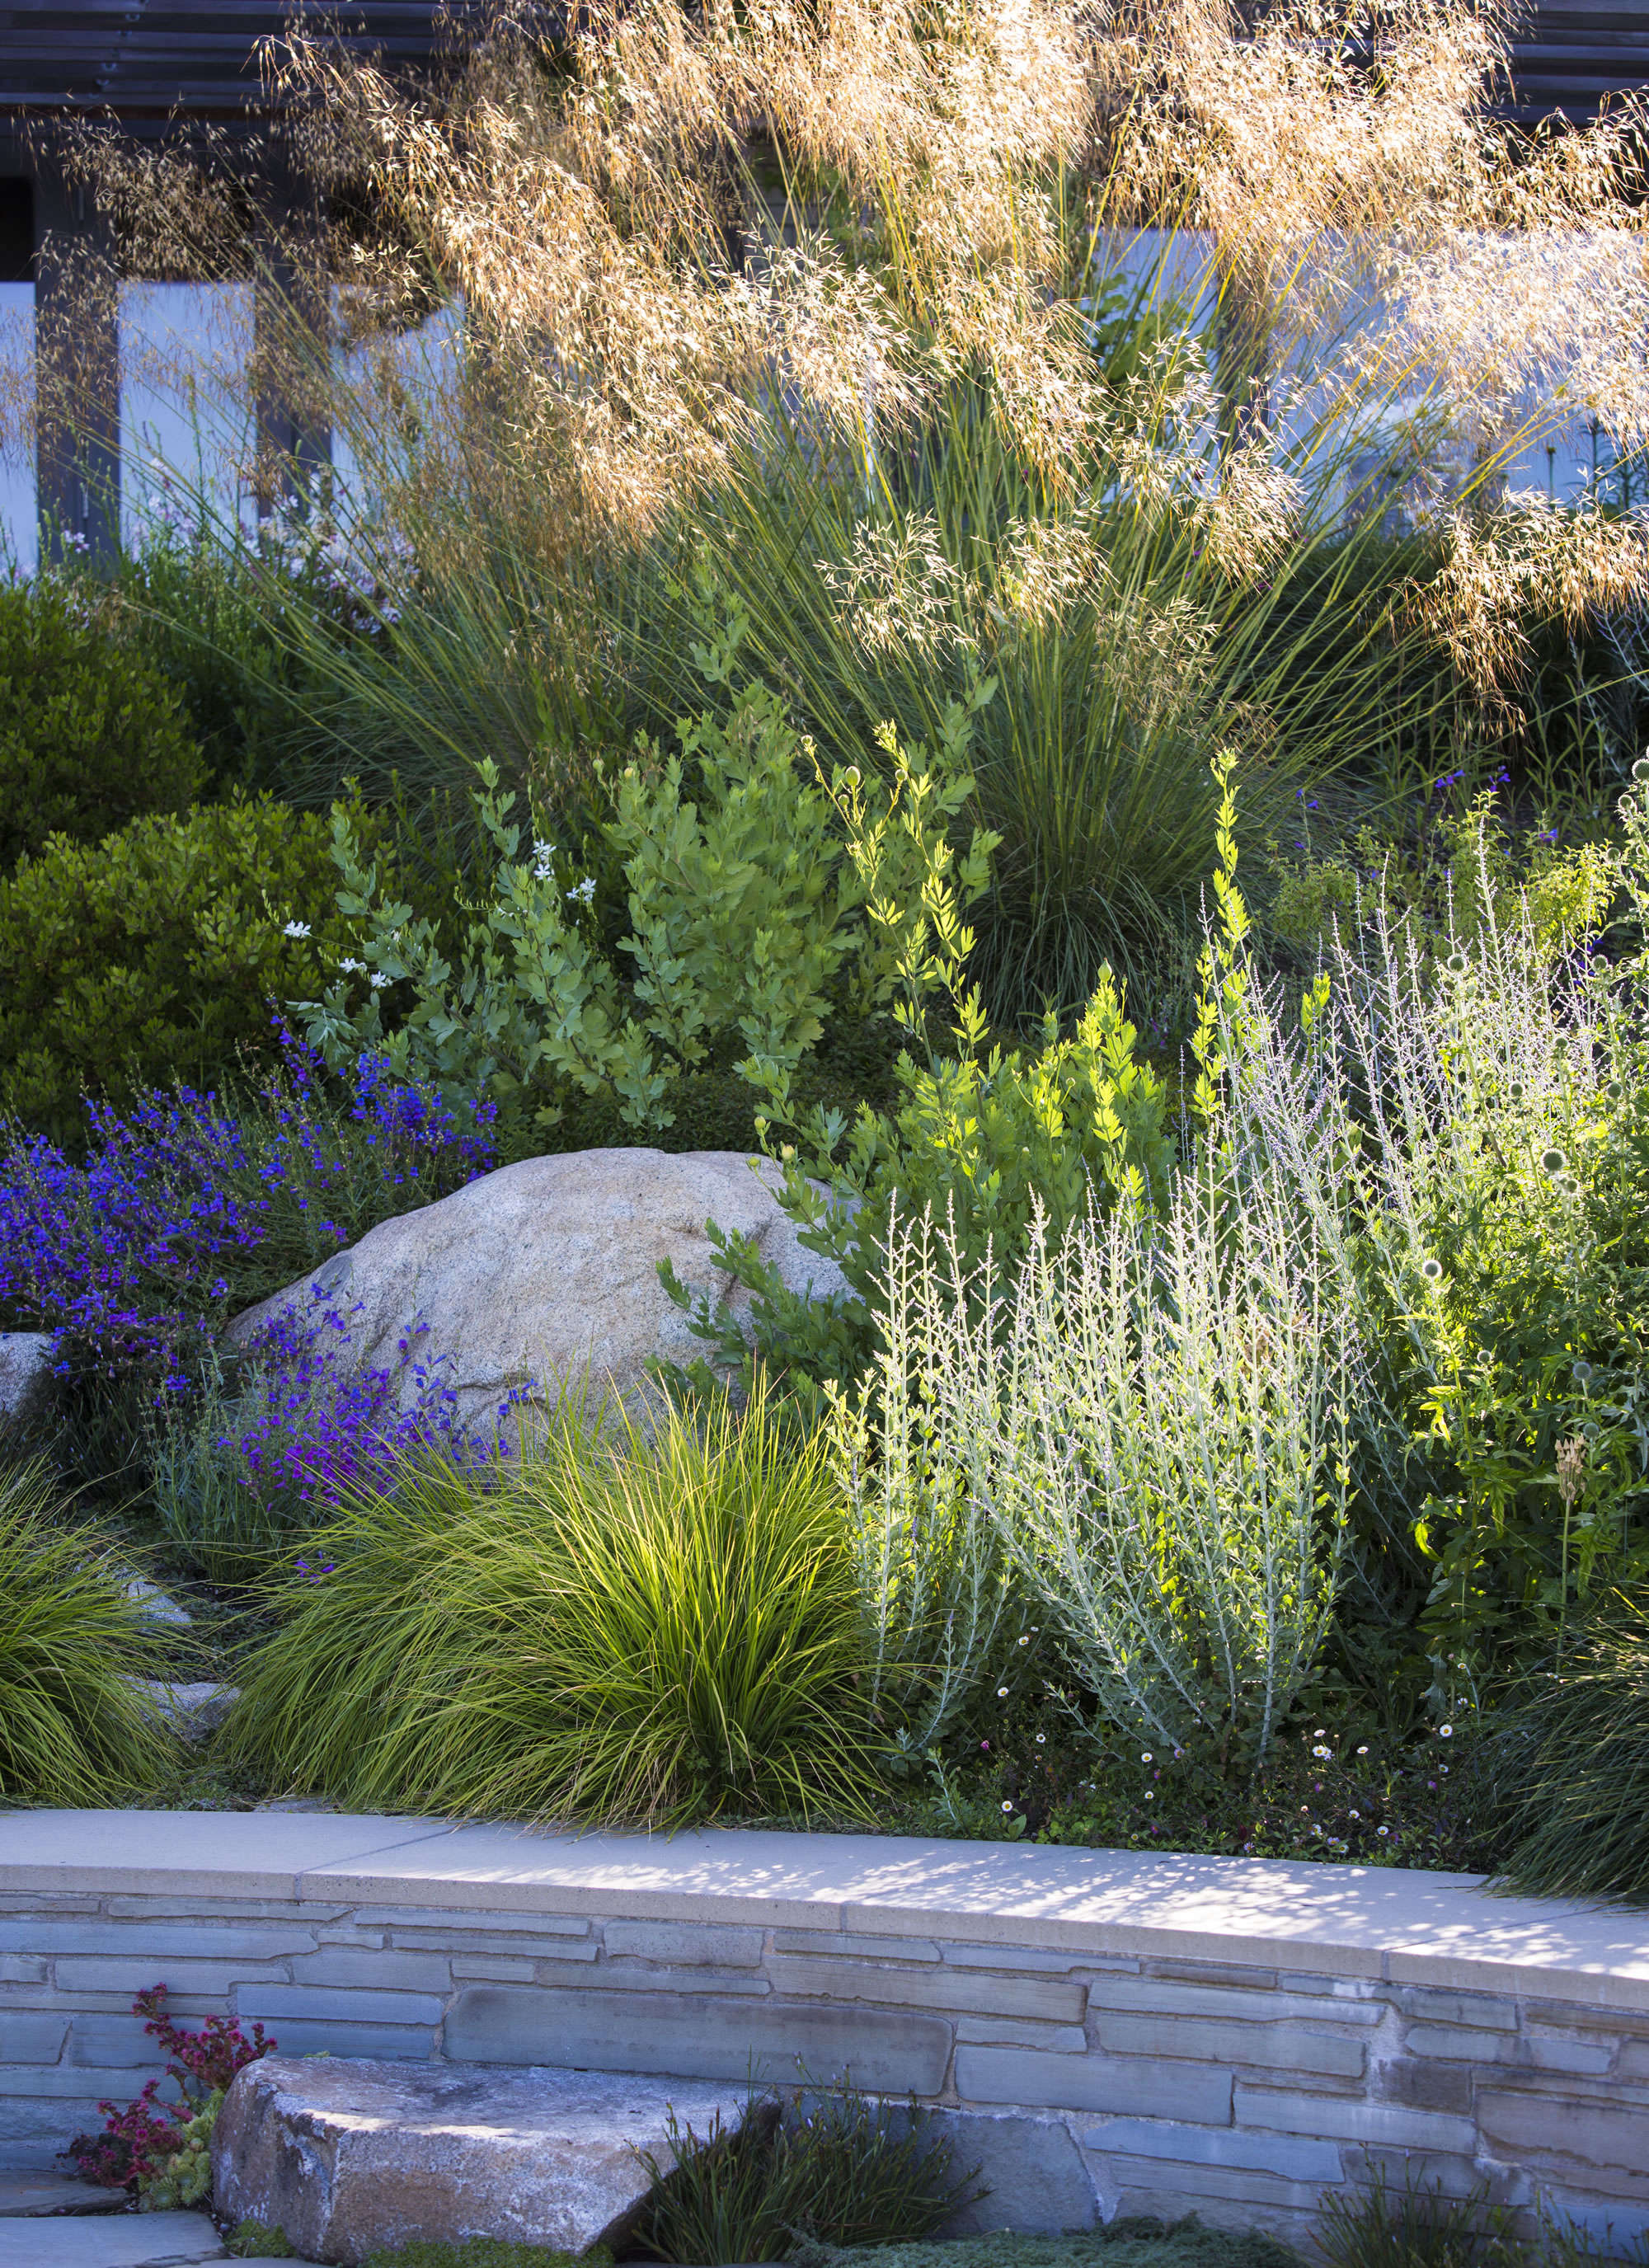 Sneak peek garden design magazine 39 s wild gardens gardenista for Garden design planting schemes